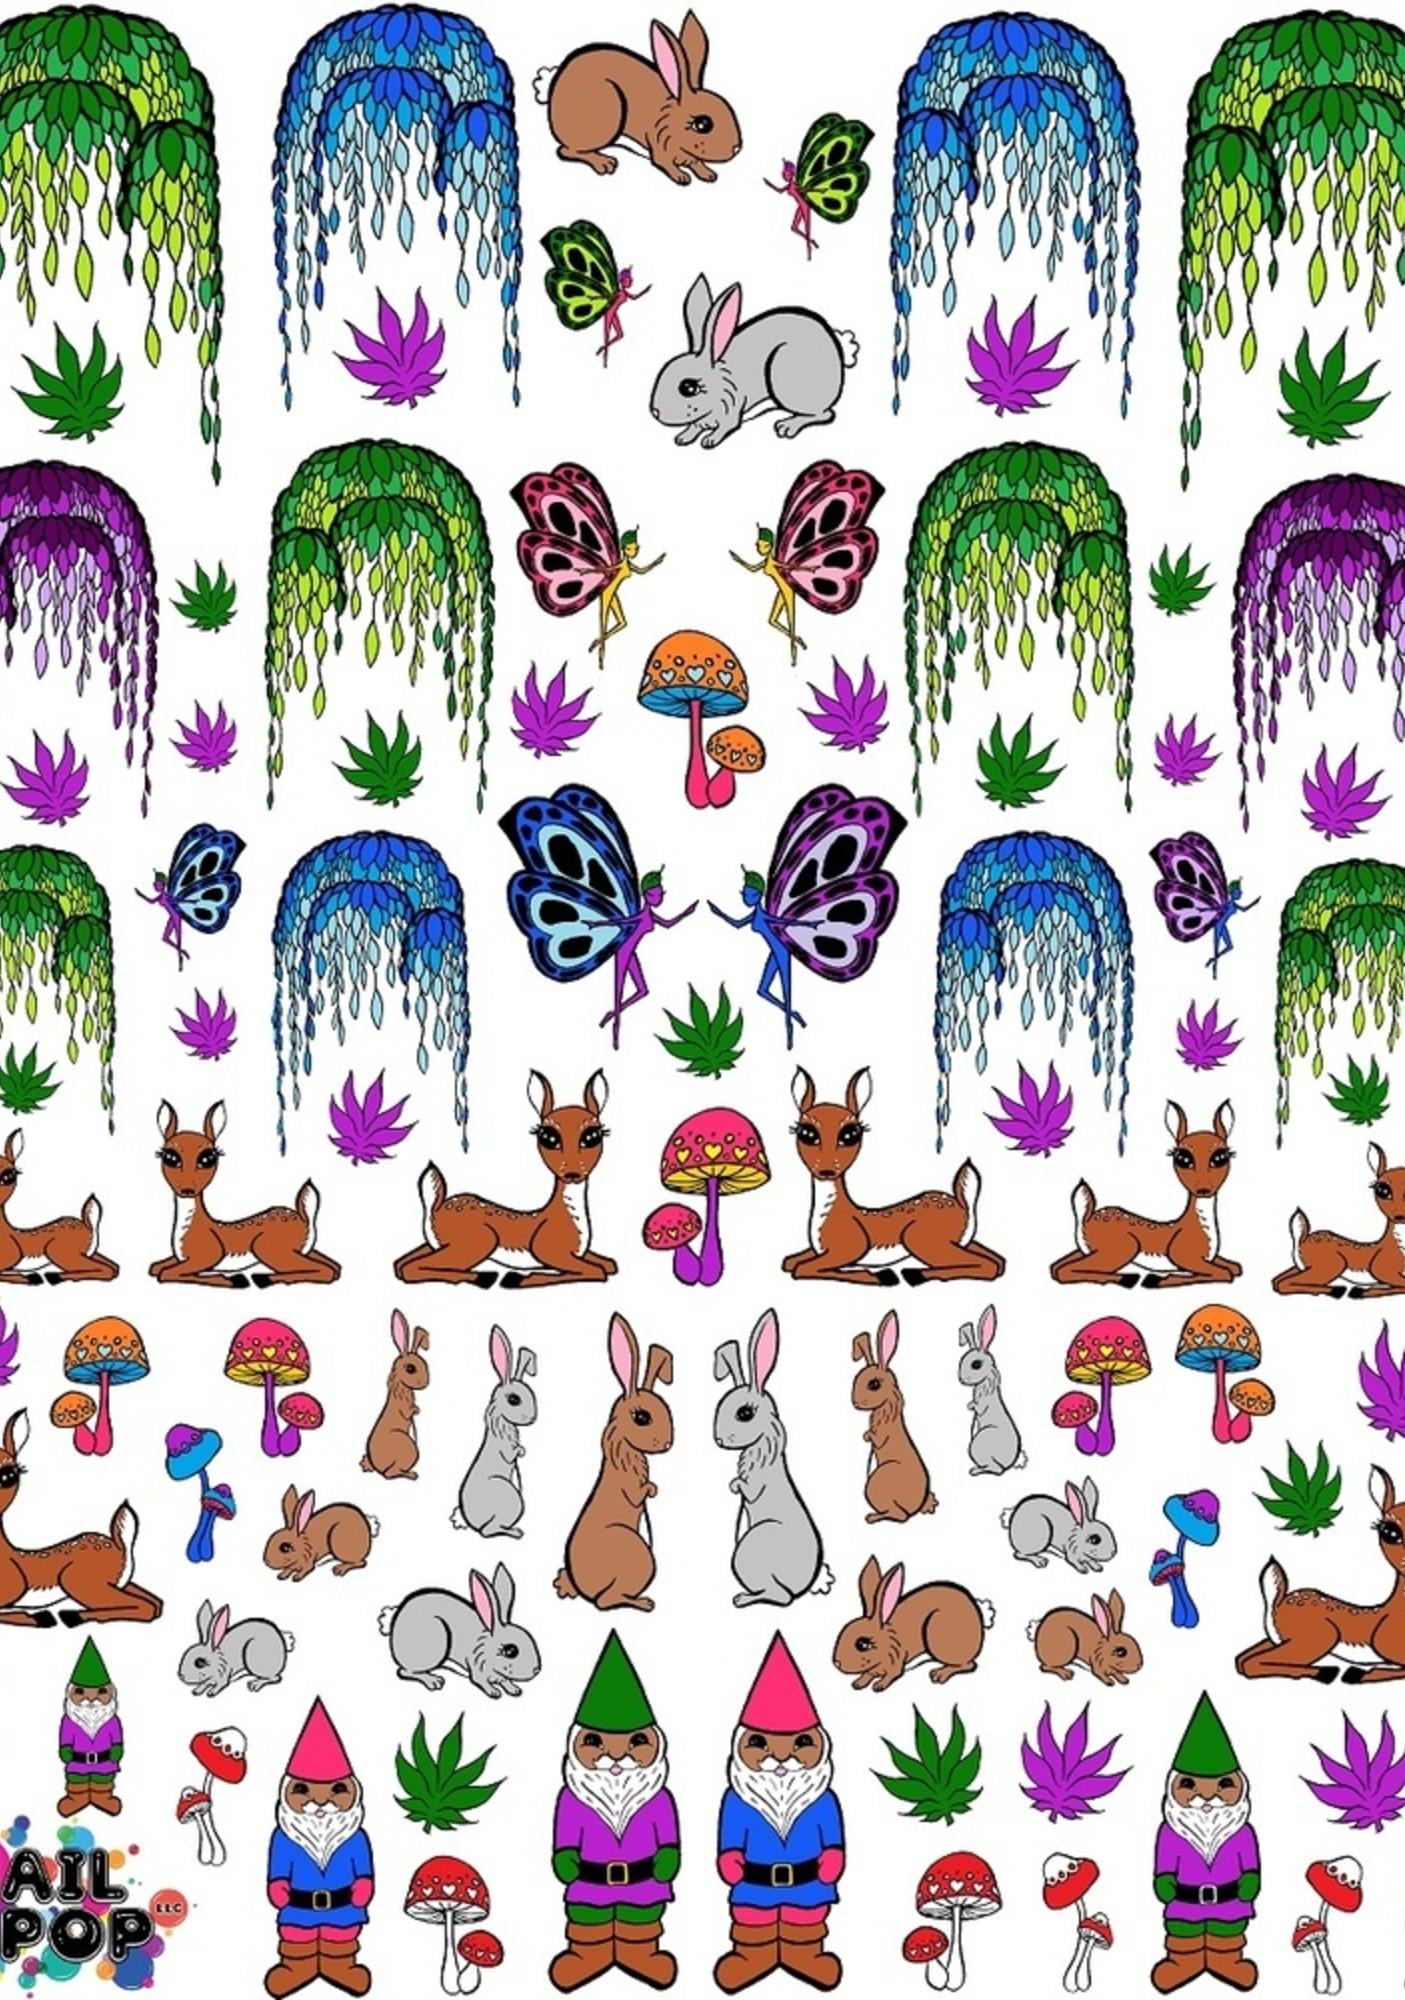 Nail Pop Enchanted Forest Nail Decals